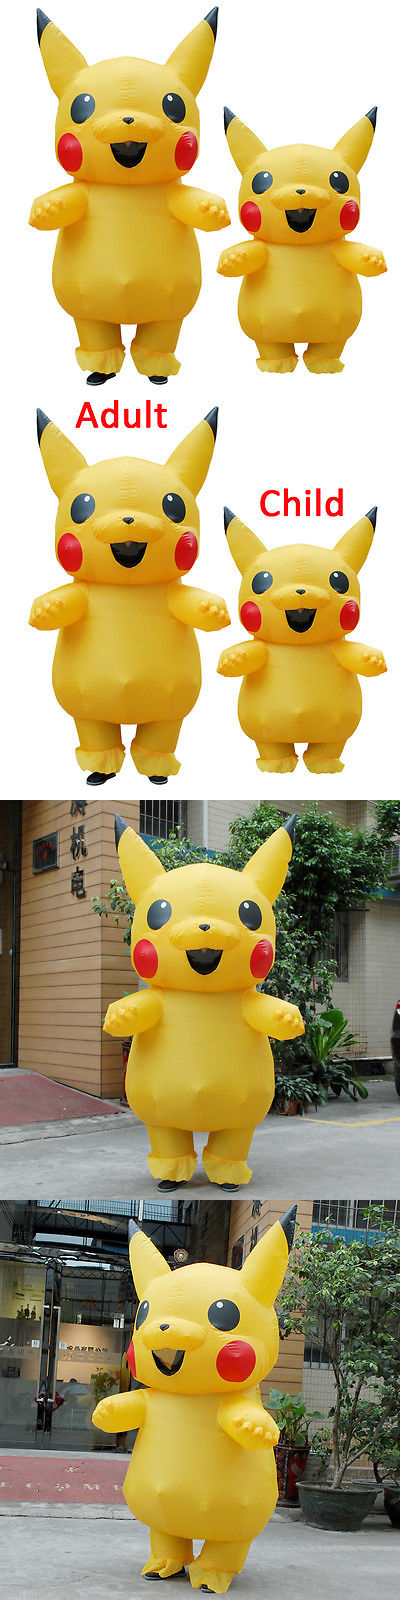 Unisex 86207 New Child Large Mascot Pikachu Inflatable Costume Cosplay Halloween Funny Dress -u003e & Unisex 86207: New Child Large Mascot Pikachu Inflatable Costume ...